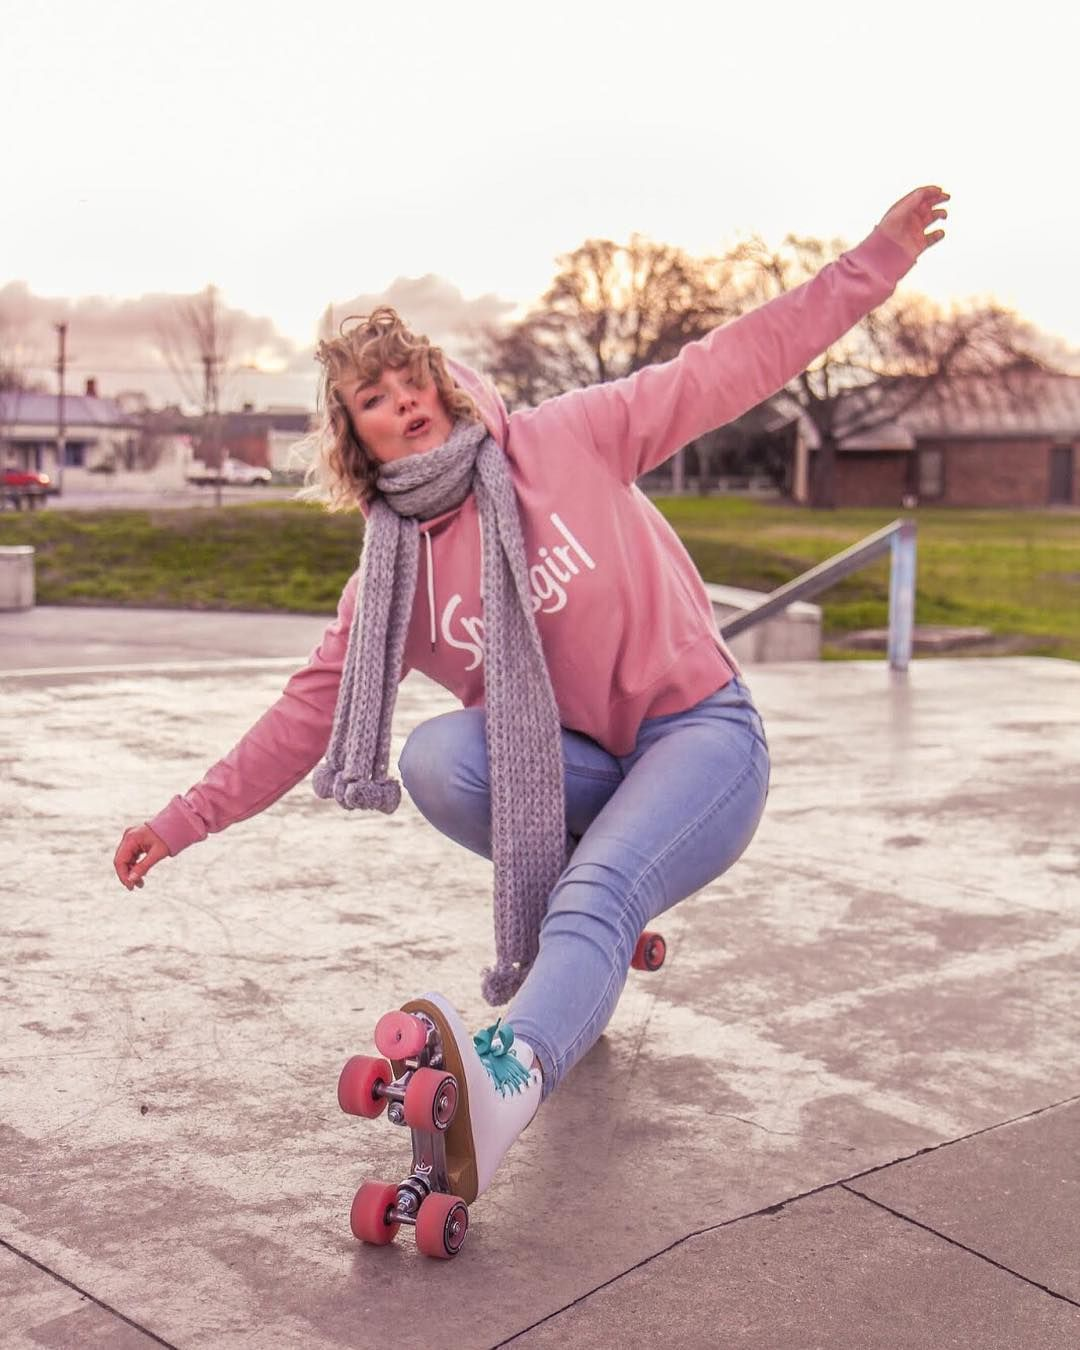 Pin By Michaela Harwood On Skating In 2020 Roller Skating Outfits Pink Roller Skates Roller Skaters